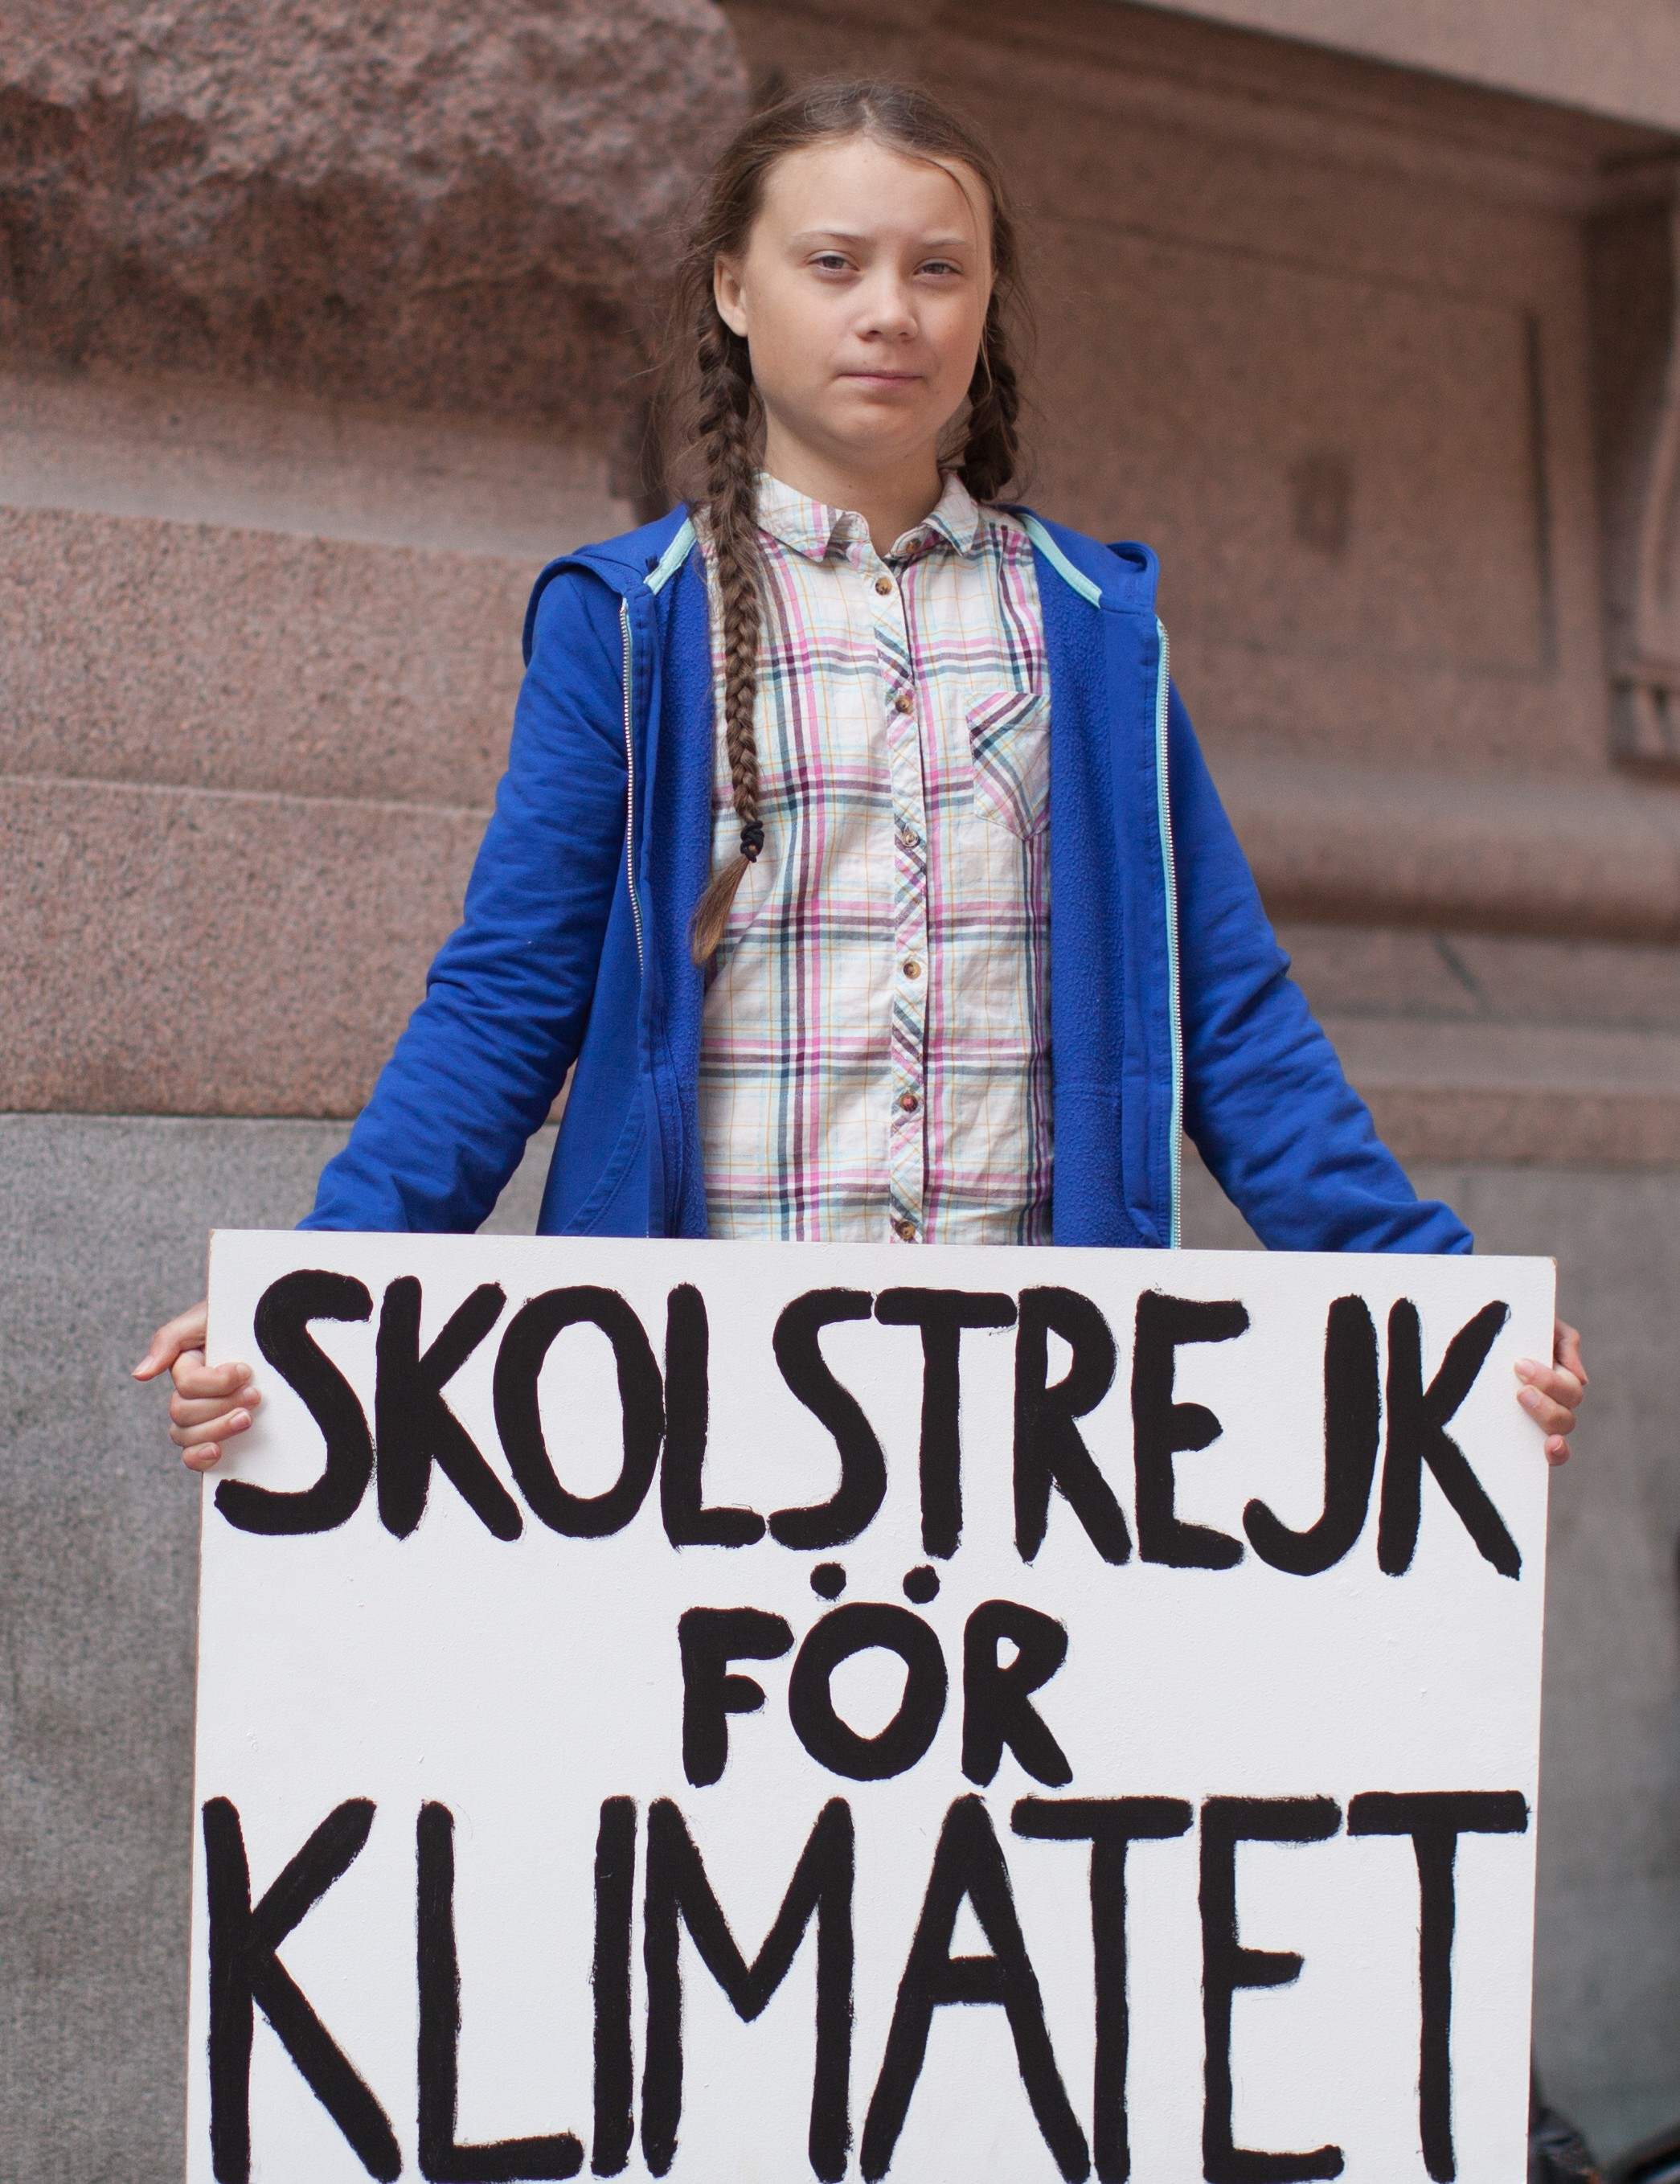 A picture of Climate Change activist Greta Thunberg